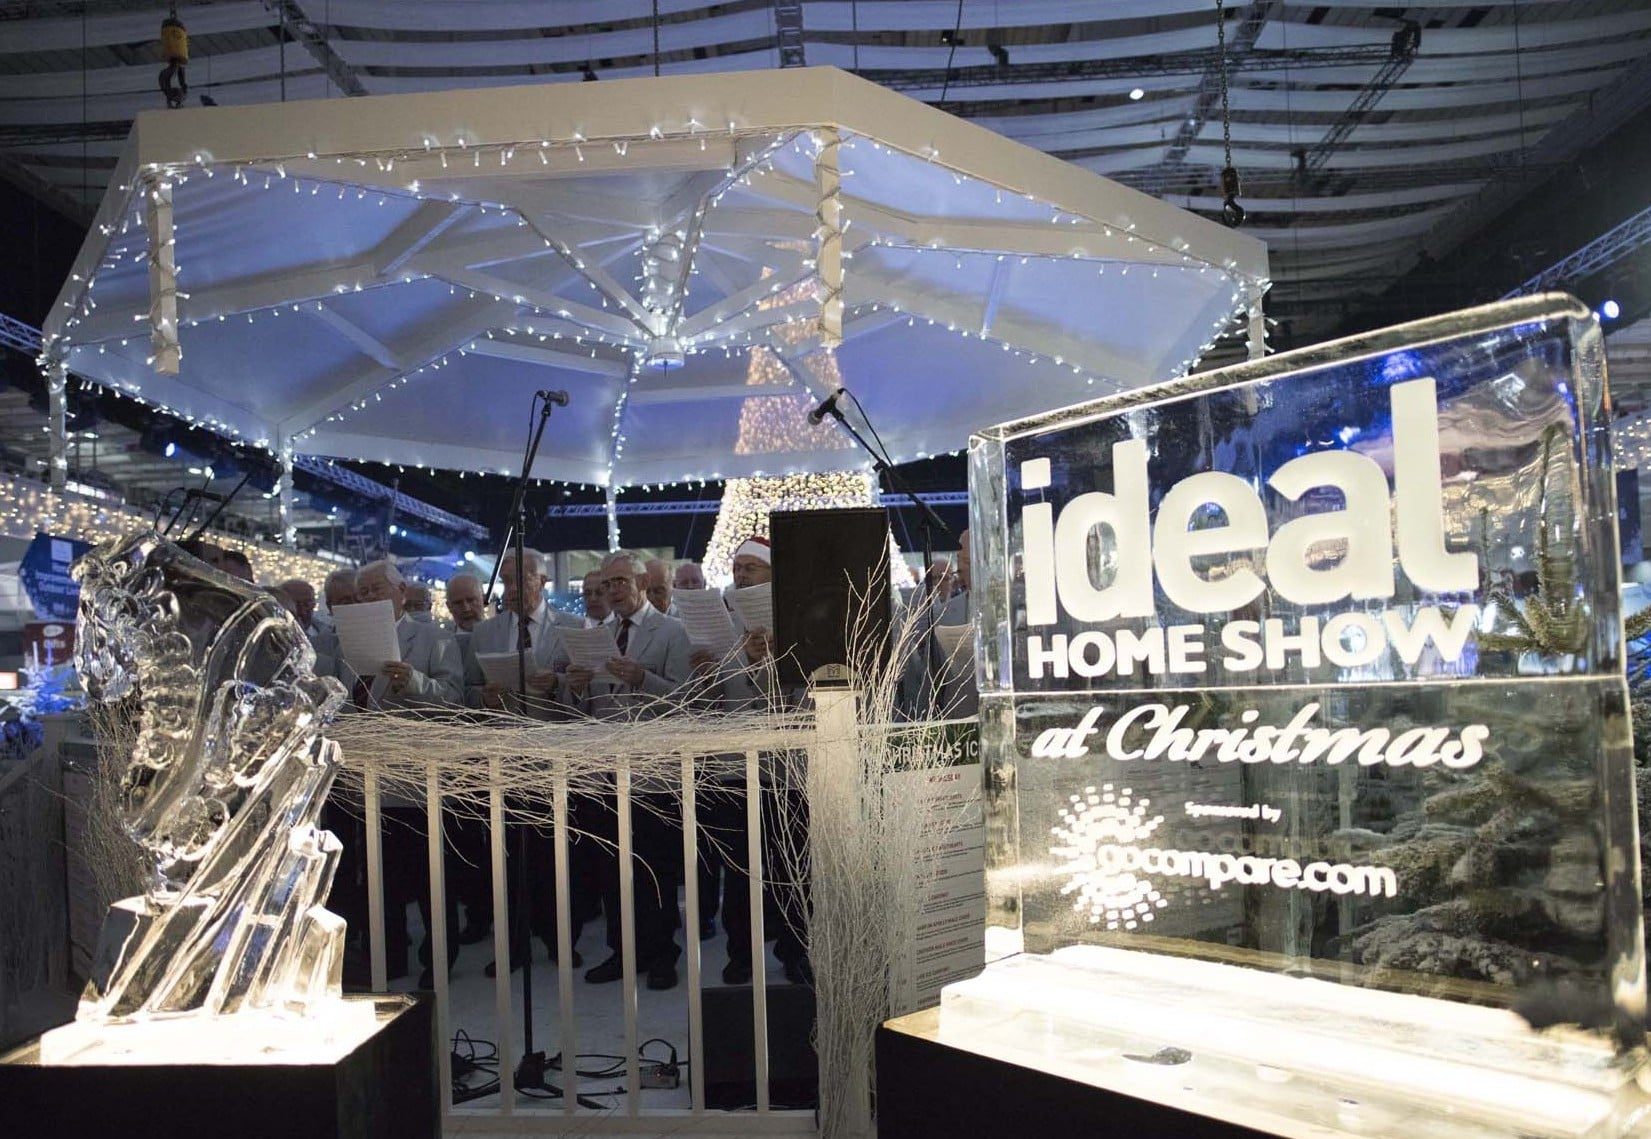 of course the ideal home show at christmas isn t just for shopping